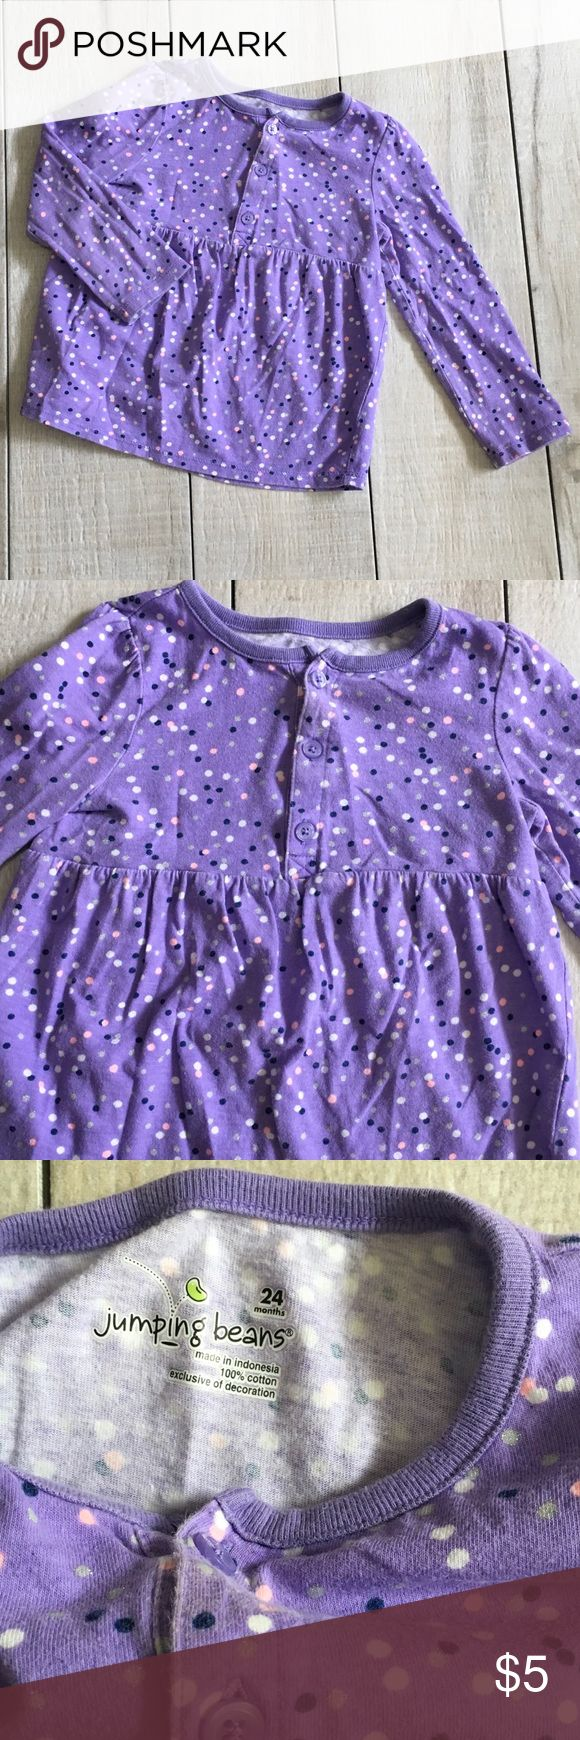 NEW ITEM - Polka Dot Metallic Long Sleeve Top Size 24m. Jumping Beans long sleeve tee shirt top with polka dots and metallic silver dots. 100% cotton. Good used condition with wash wear/fading. Smoke free home. Unscented laundry products. Shirts & Tops Tees - Long Sleeve